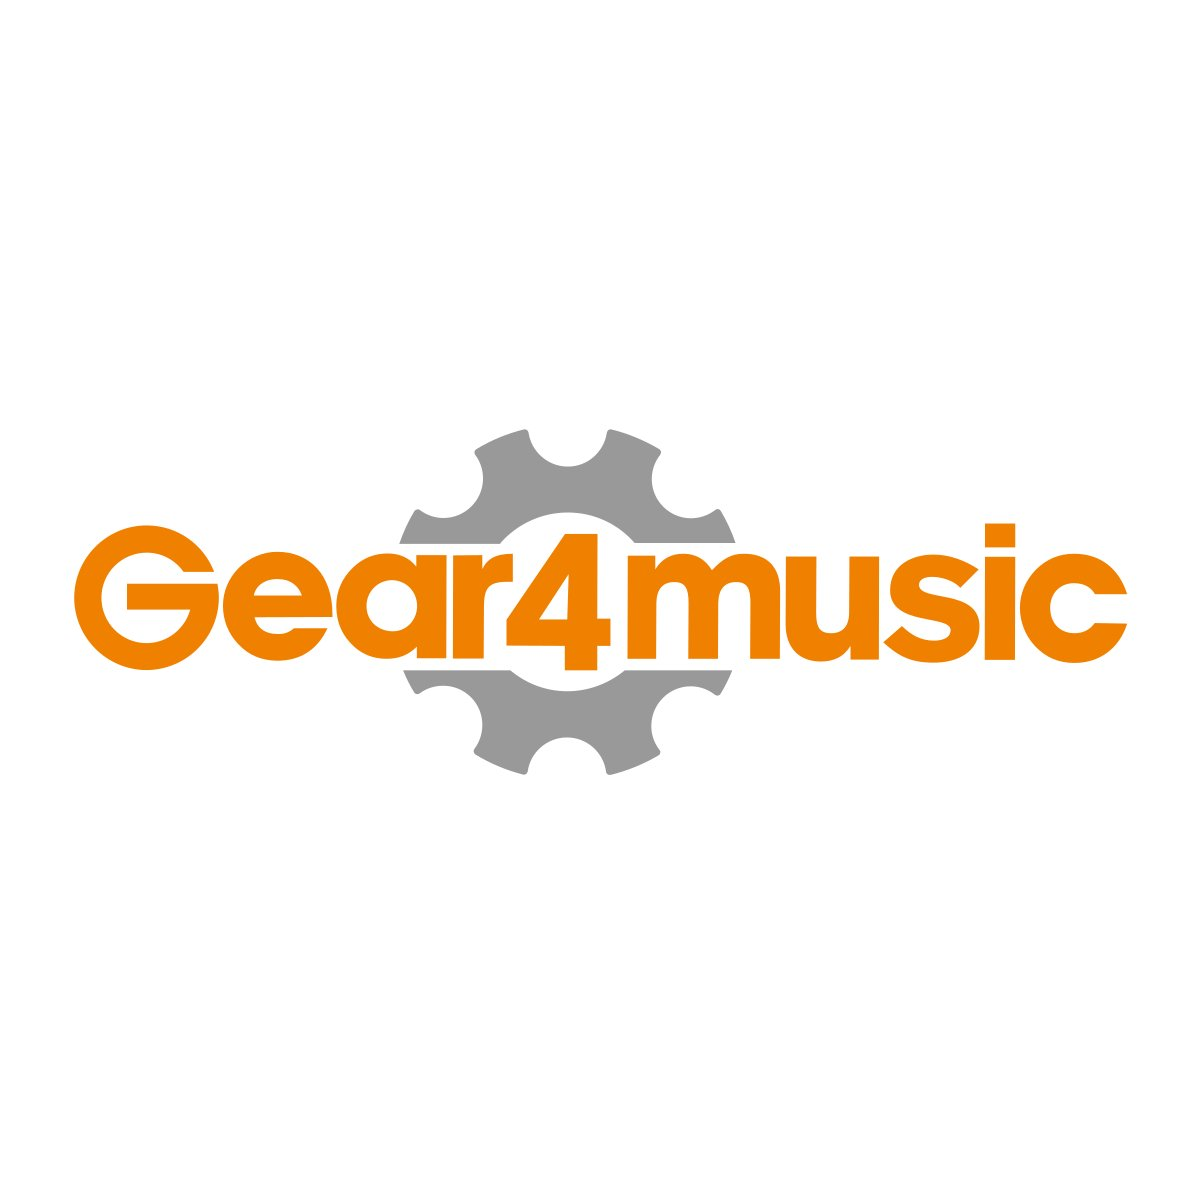 Arpa liuto di Gear4music